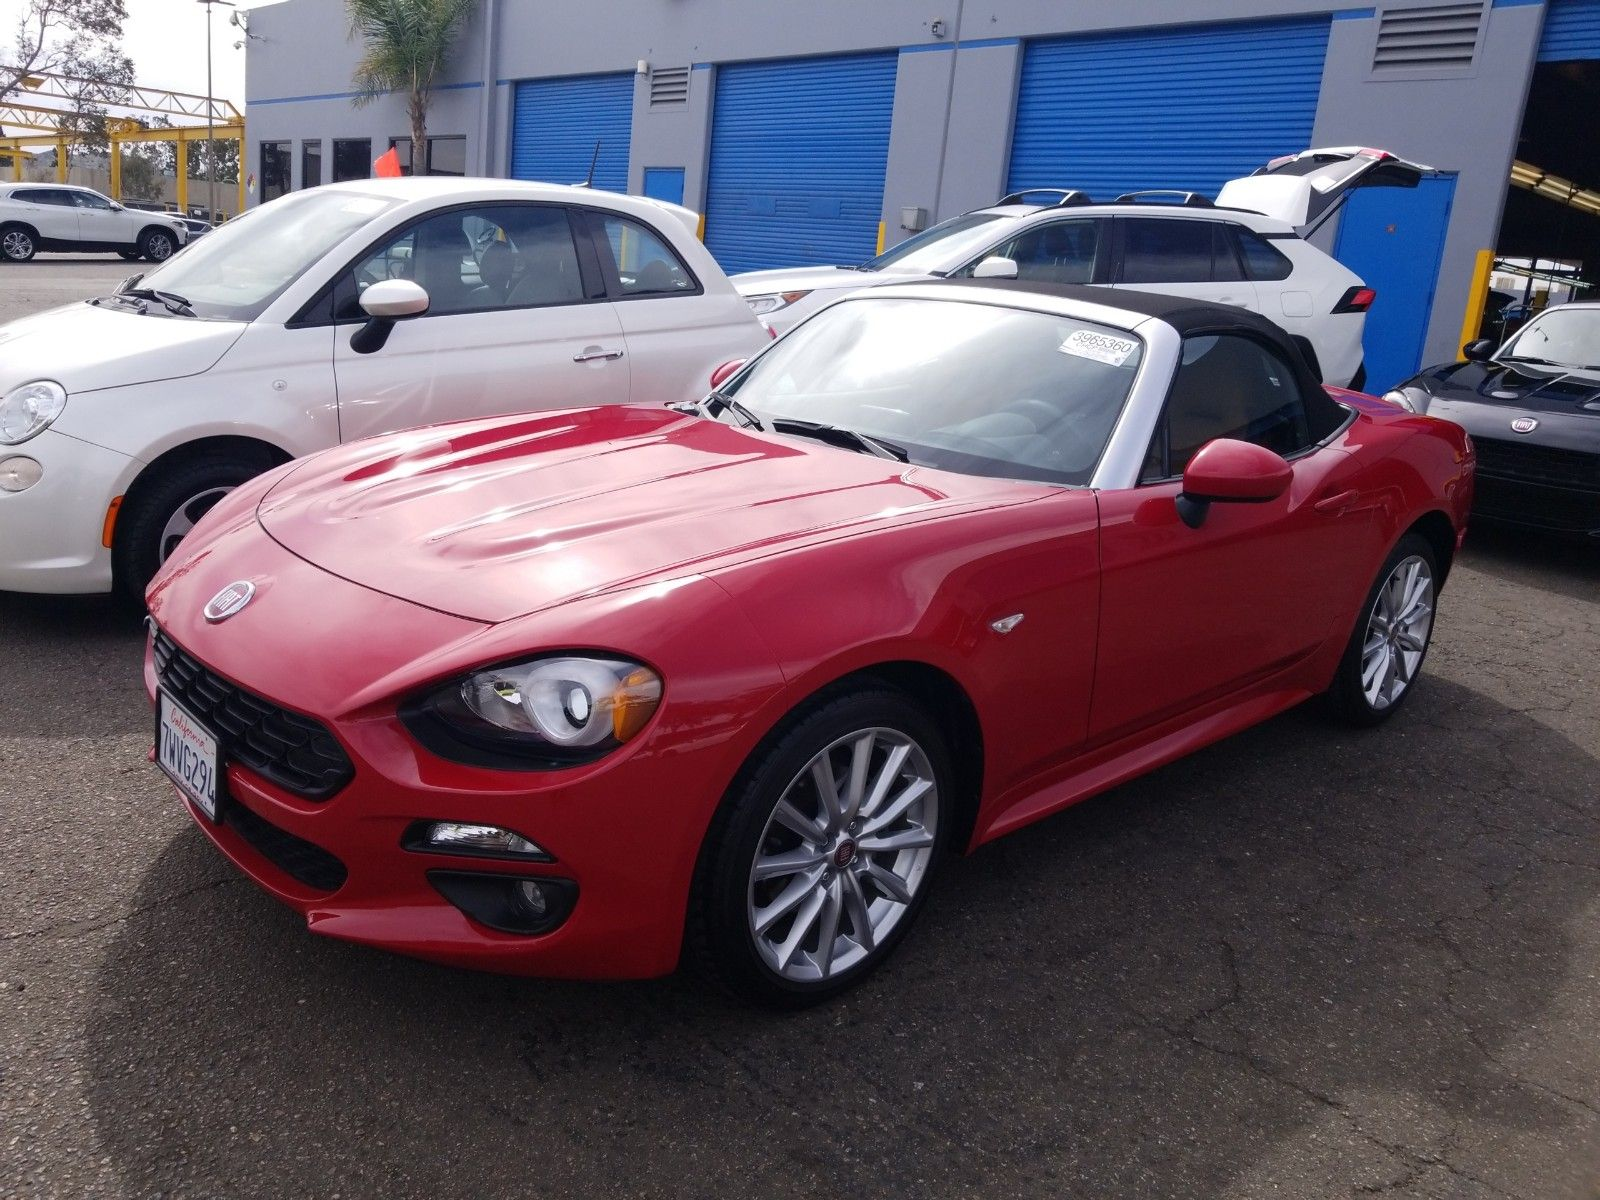 2017 Fiat 124 spider 1.4. Lot 99914078177 Vin JC1NFAEK7H0107933